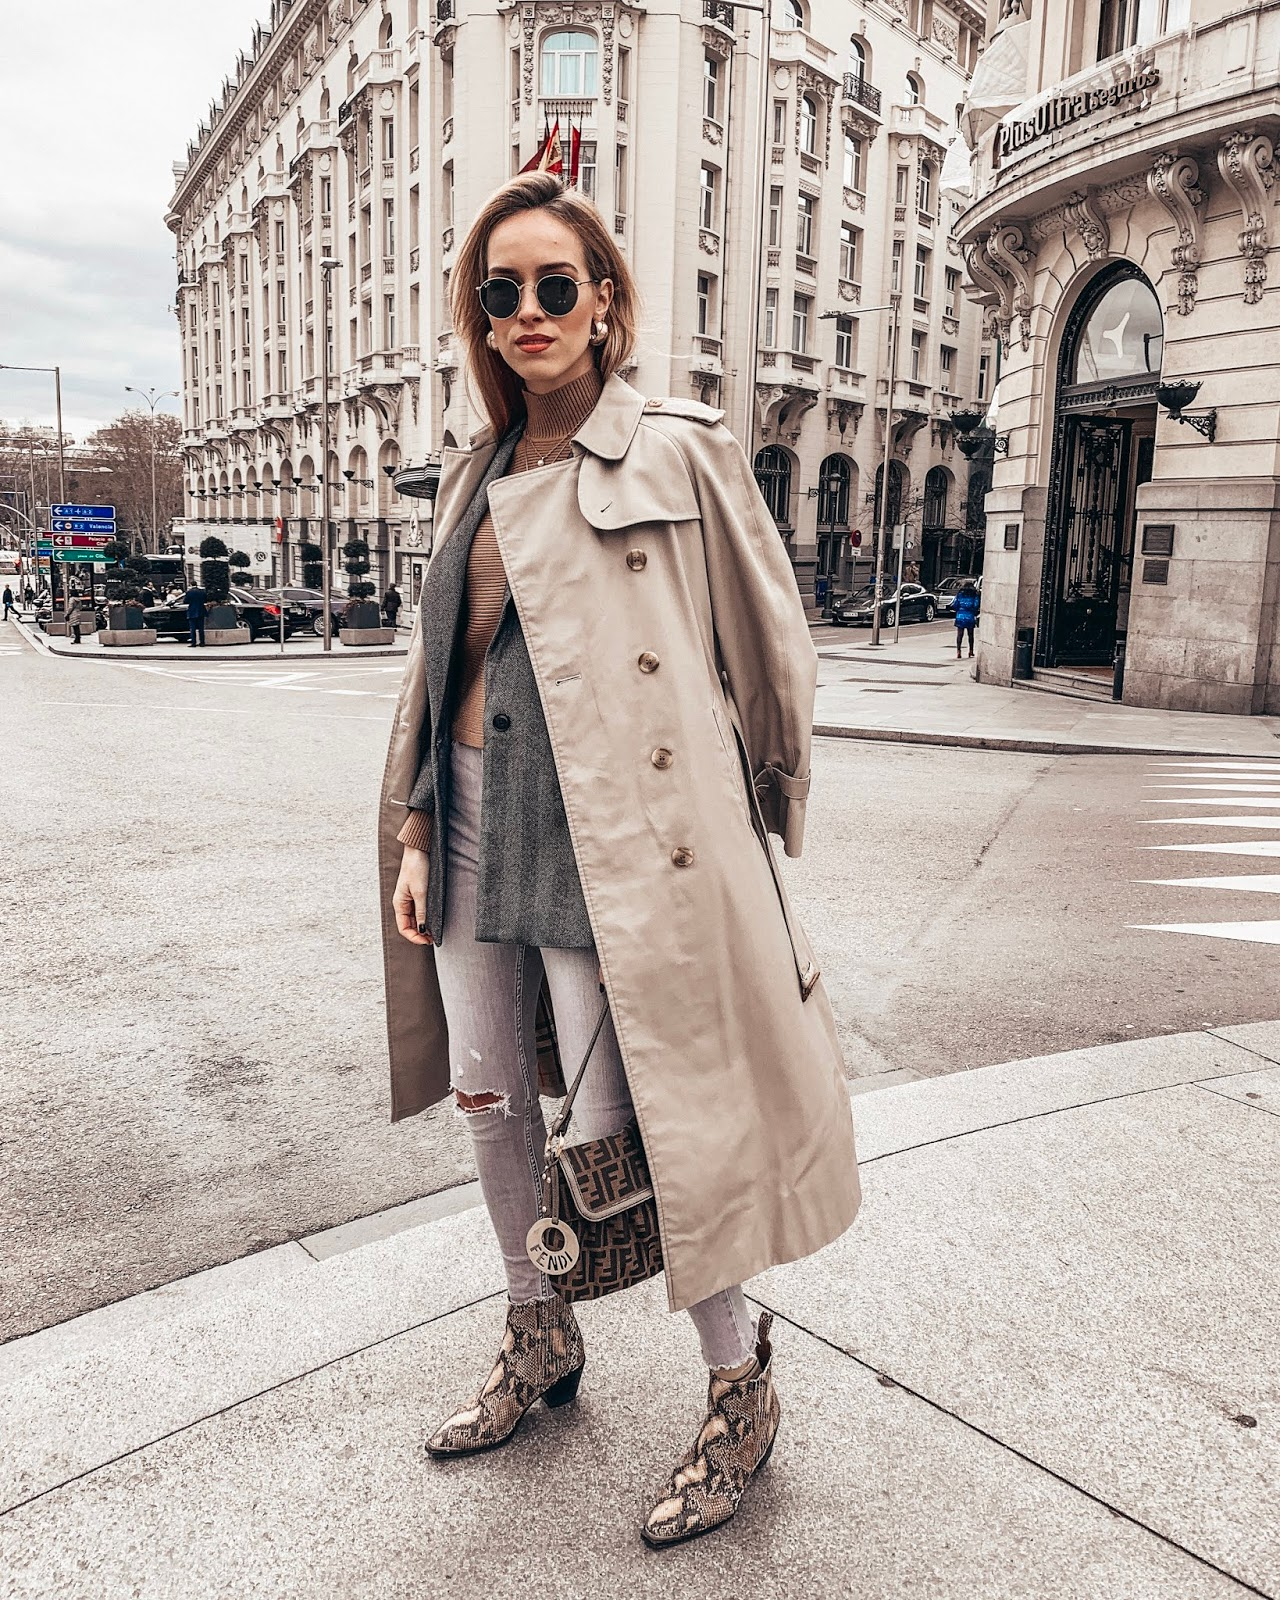 burberry long trench coat outfit